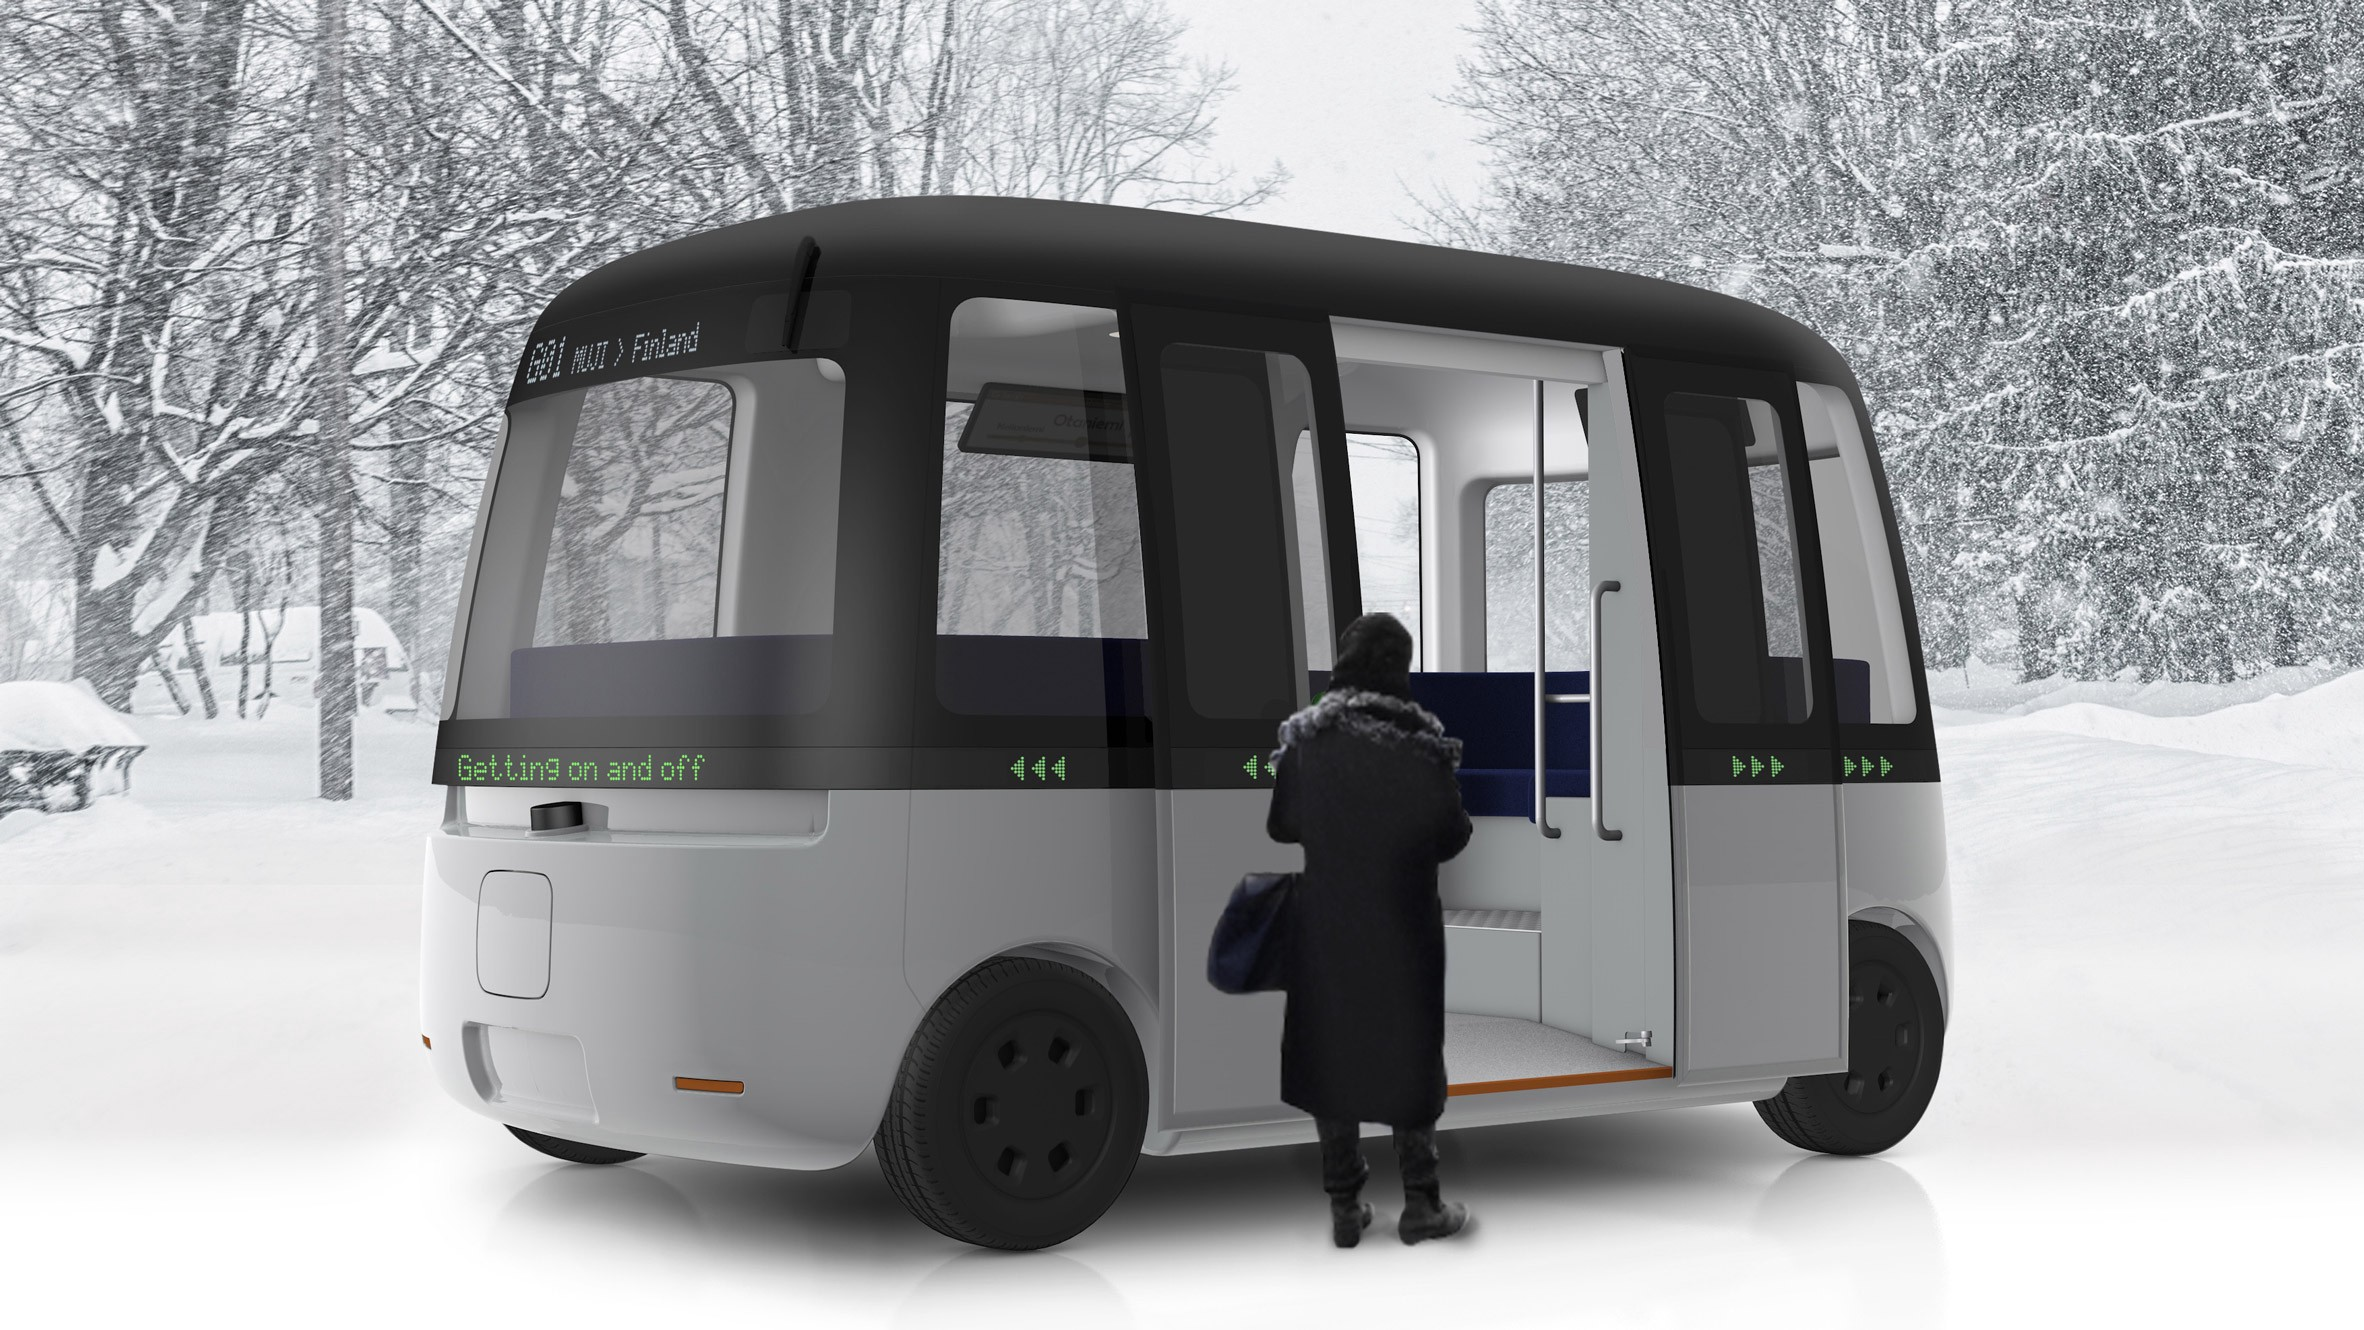 Photo: autonomous driving mini bus designed by Sensible4 and Muji.